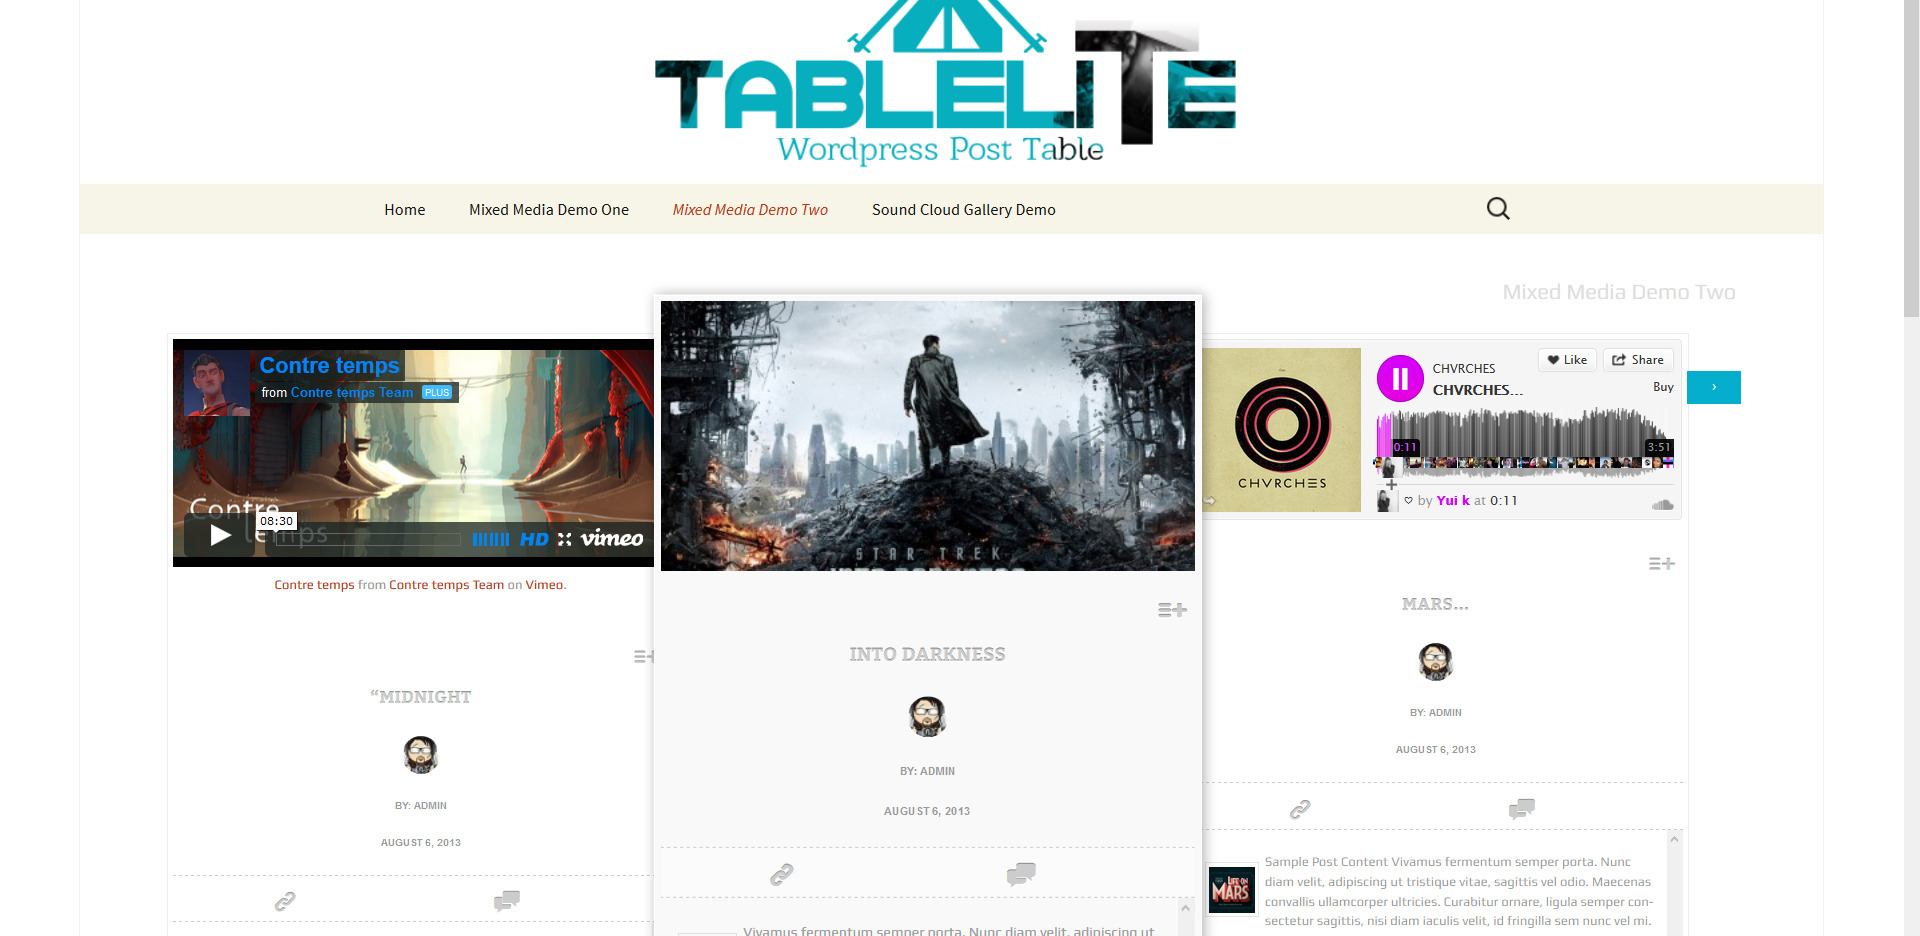 TableLite Wordpress Post Media Gallery